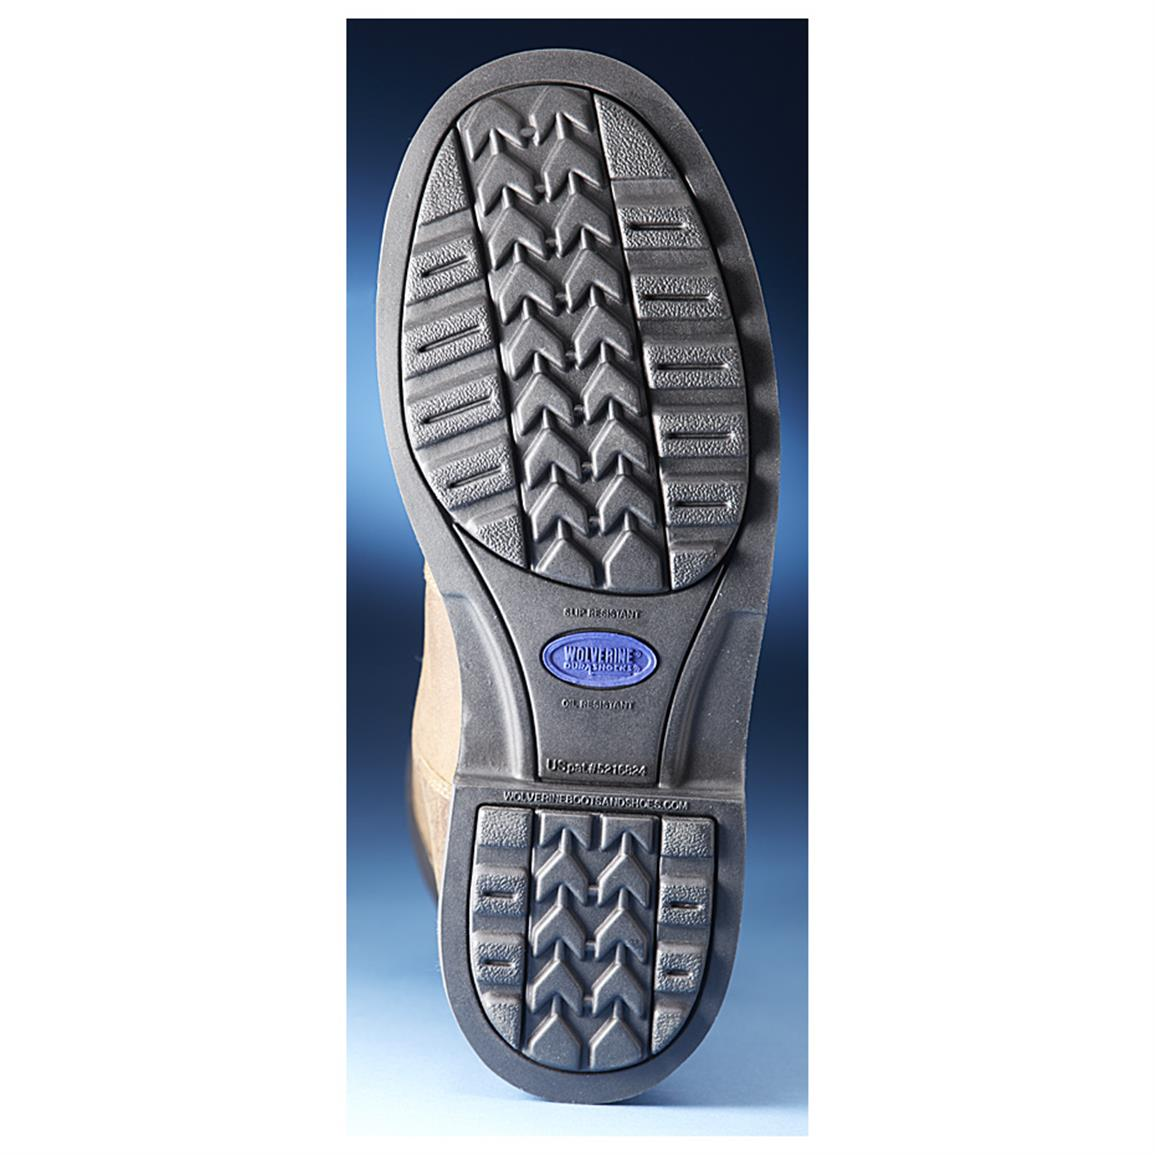 Slip and oil-resistant Wolverine DuraShocks rubber lug outsole